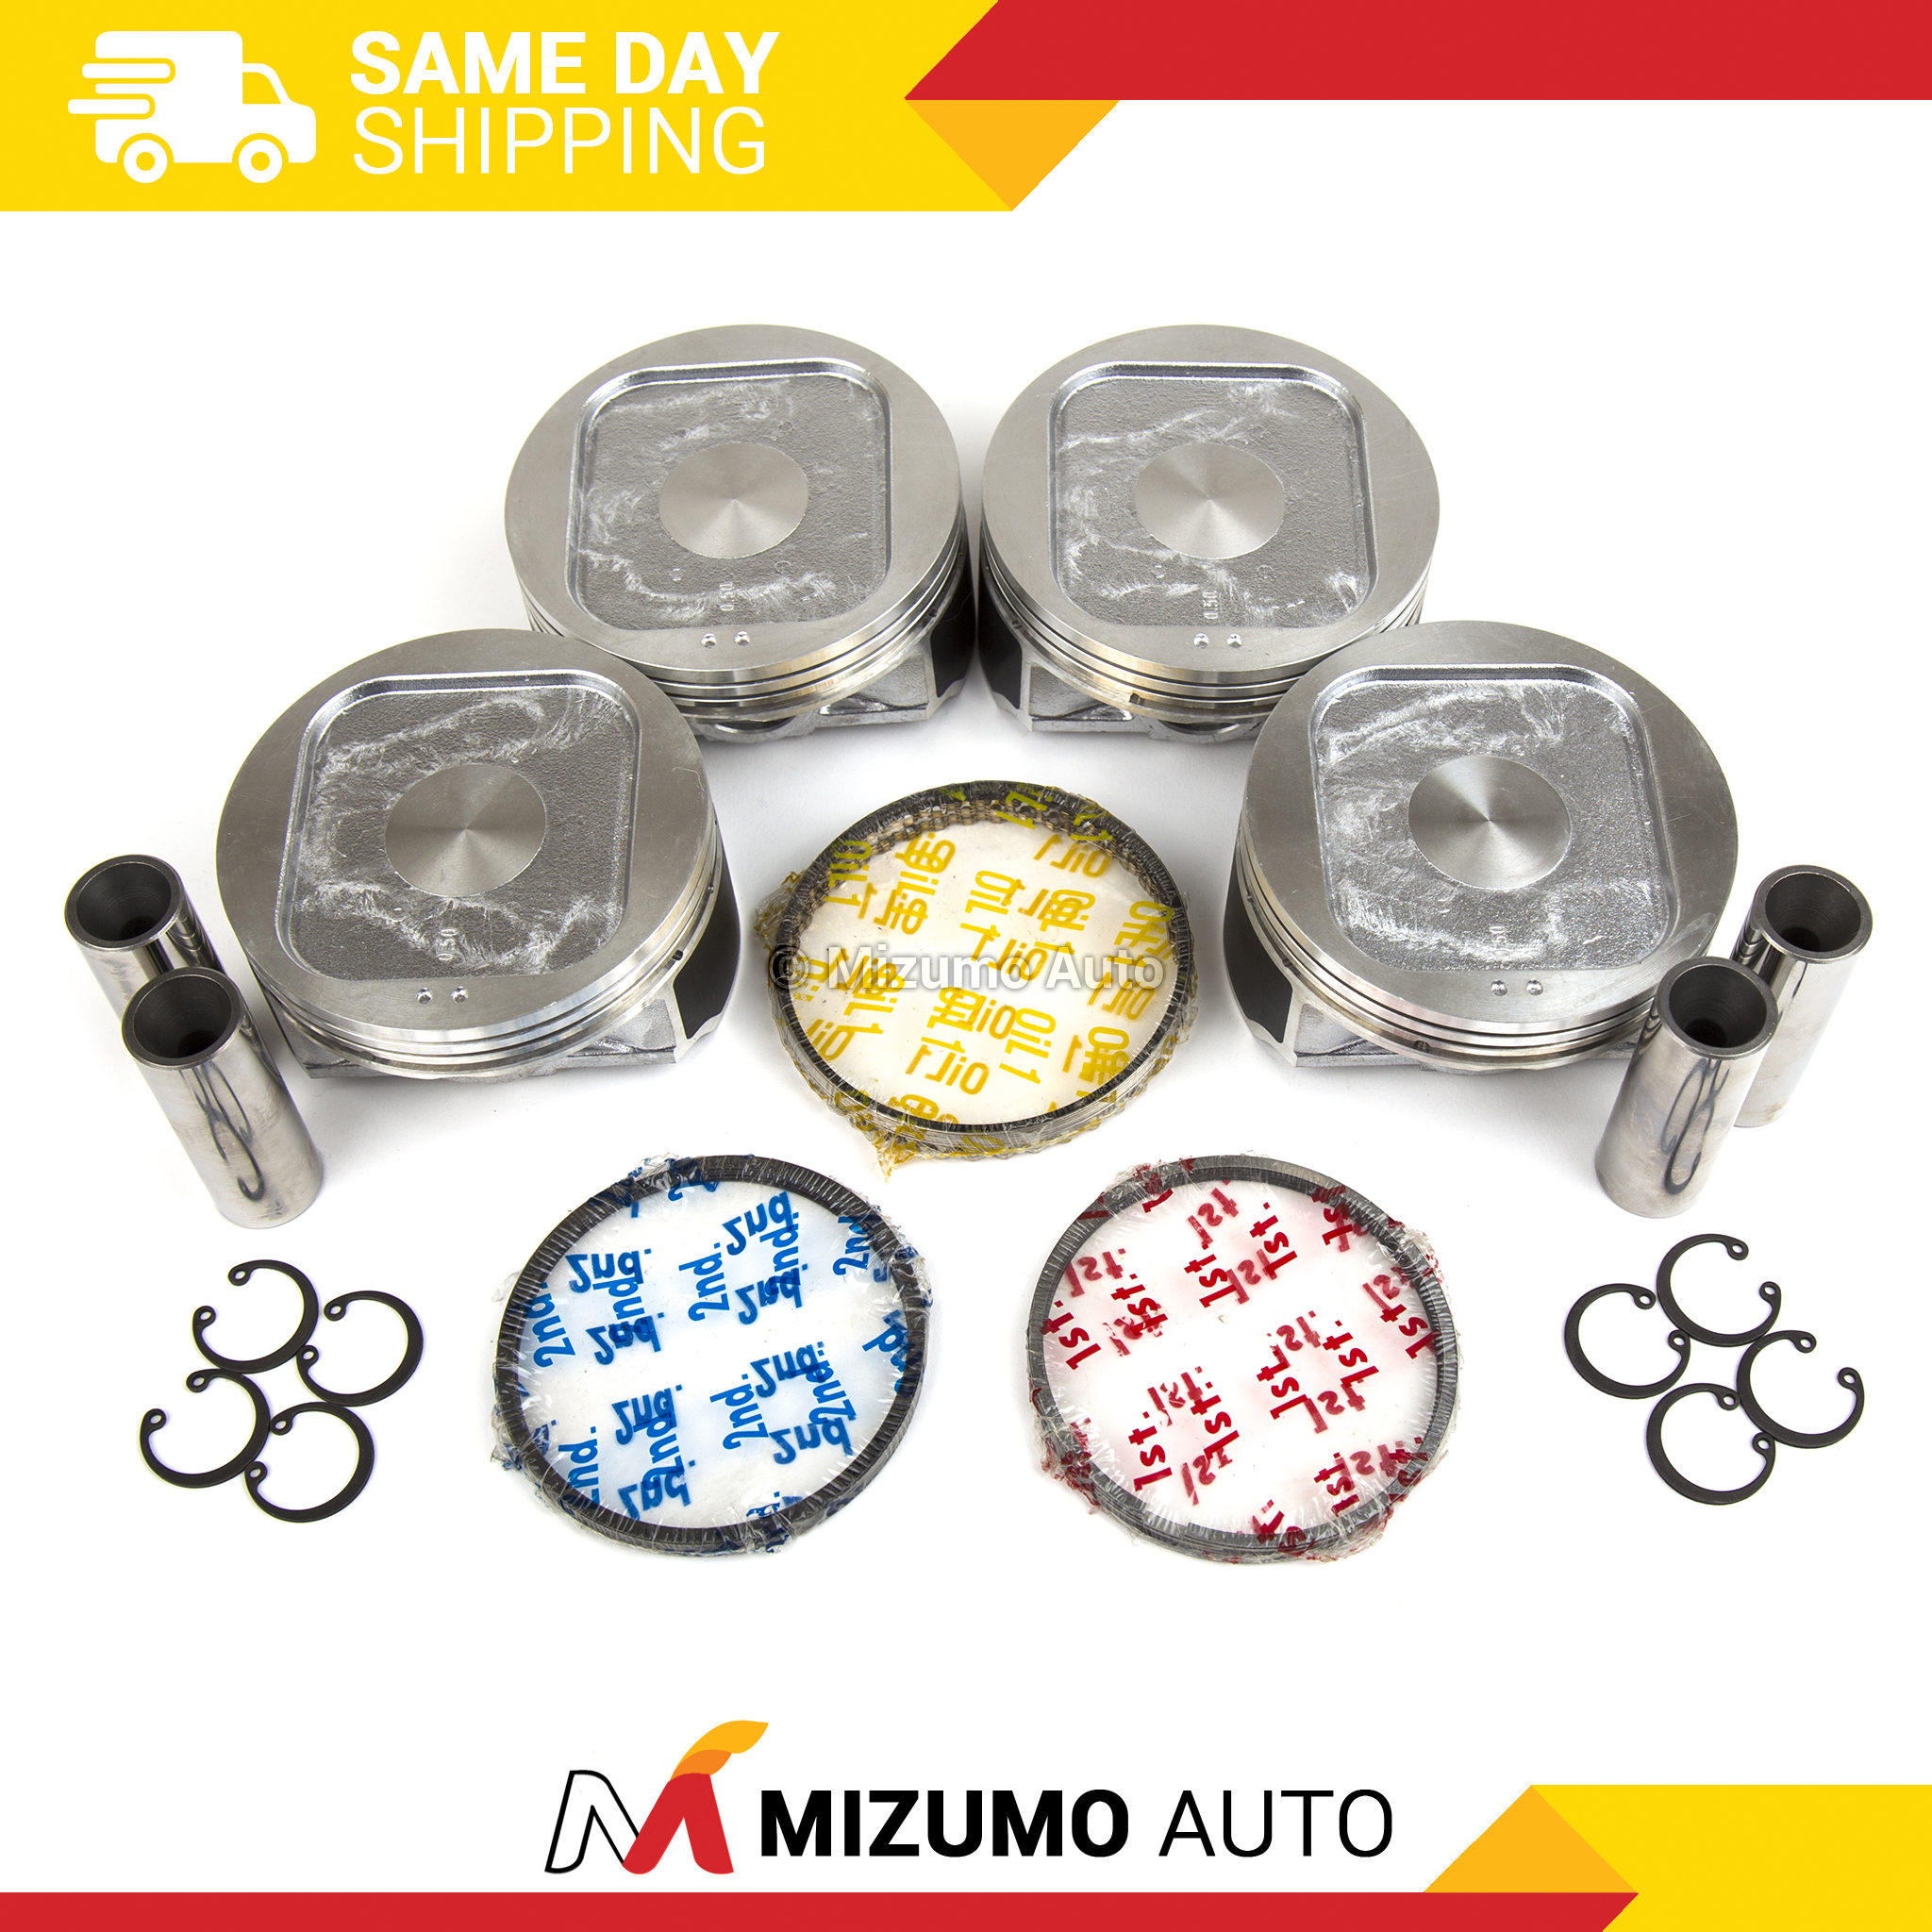 Pistons W Rings Std Fit 97 99 Subaru Forester Legacy 25l Dohc 1998 Outback Misfire Image Is Loading